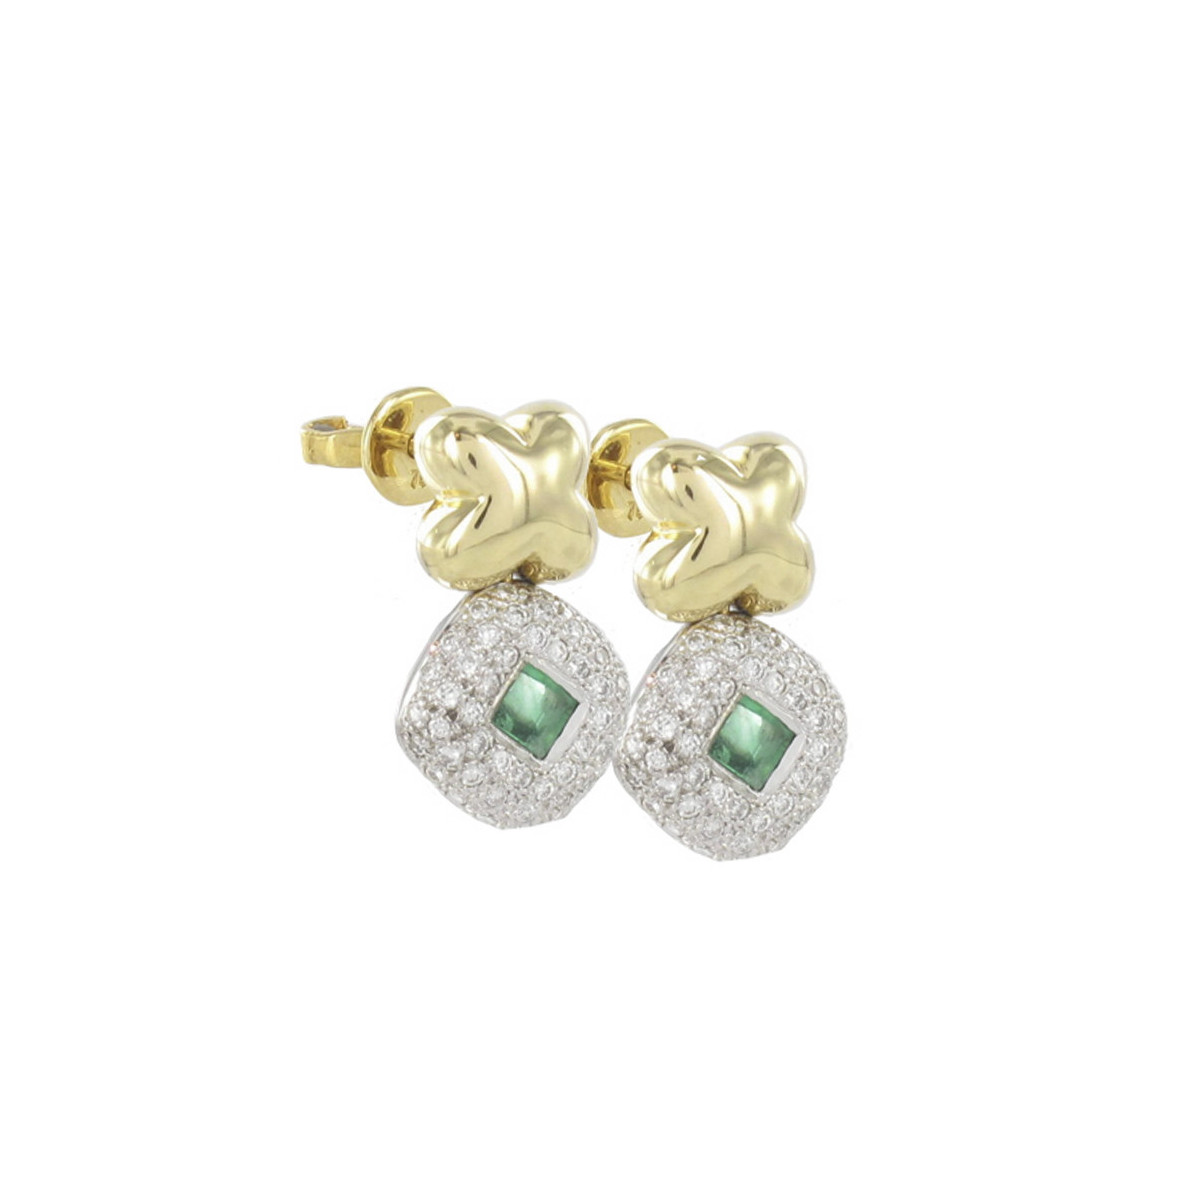 GOLD EMERALD AND DIAMOND EARRING